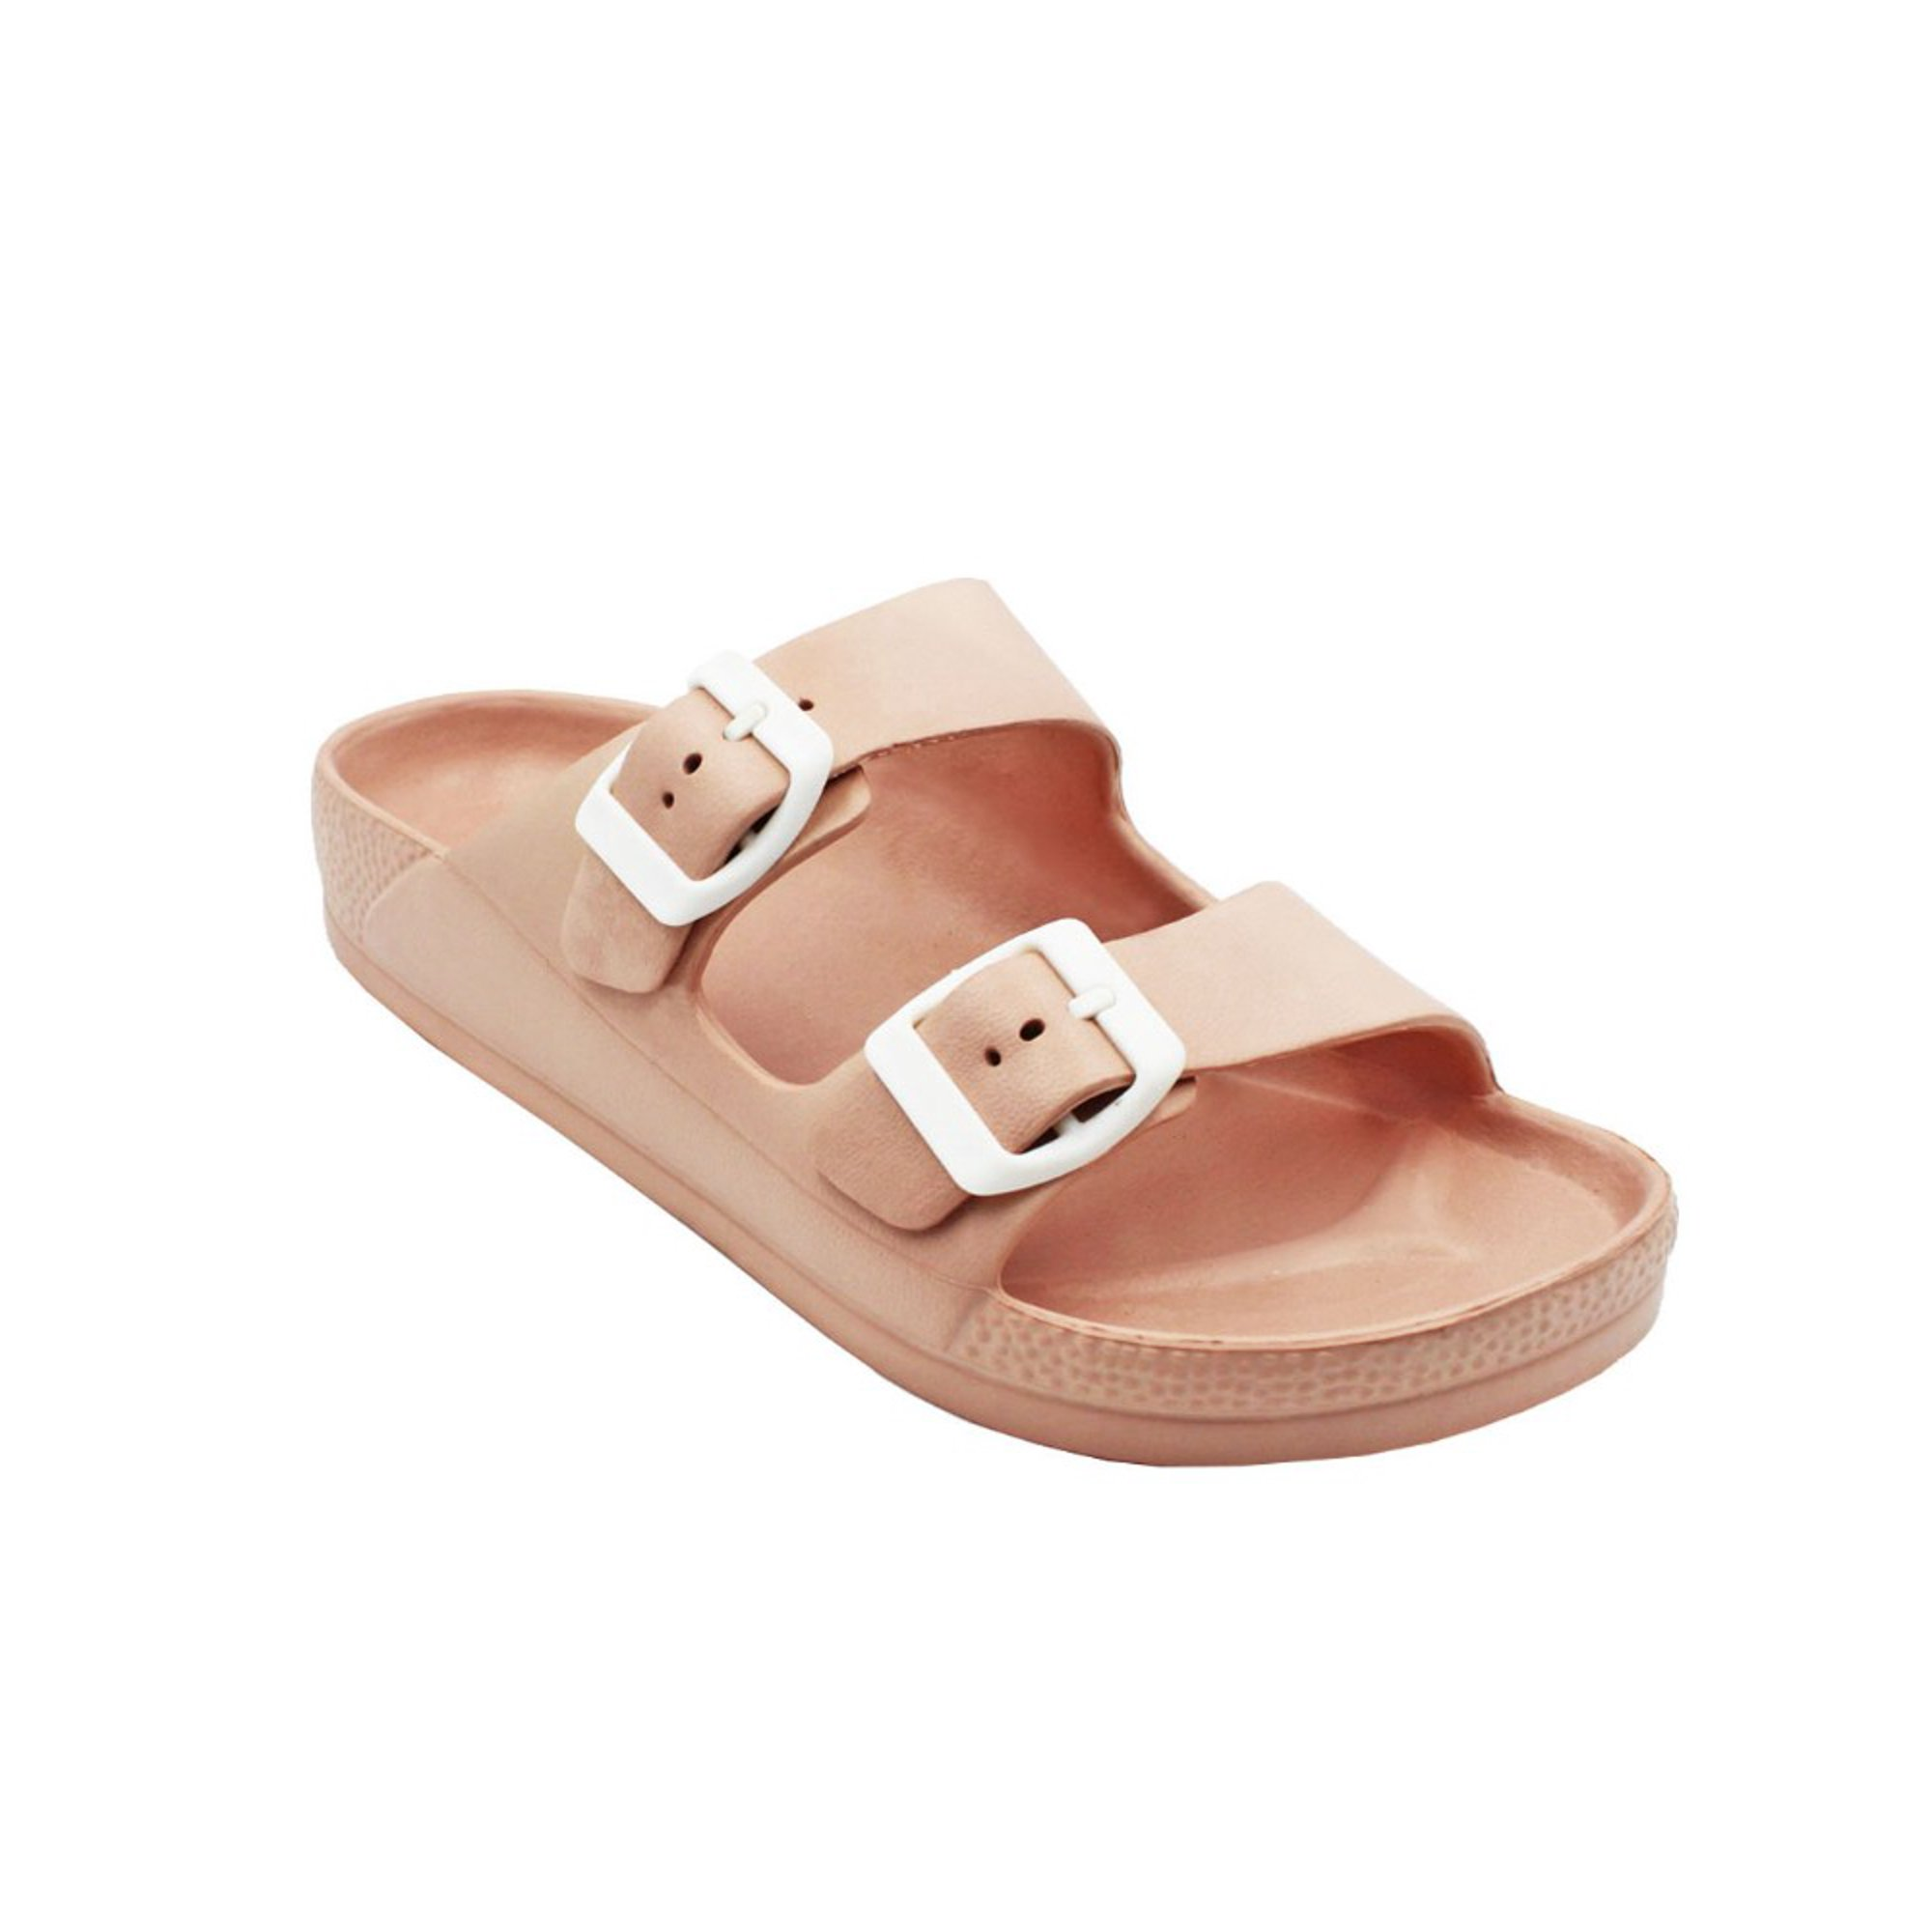 8be566b3e318 Women's Lightweight Comfort Soft Slides EVA Adjustable Double Buckle ...